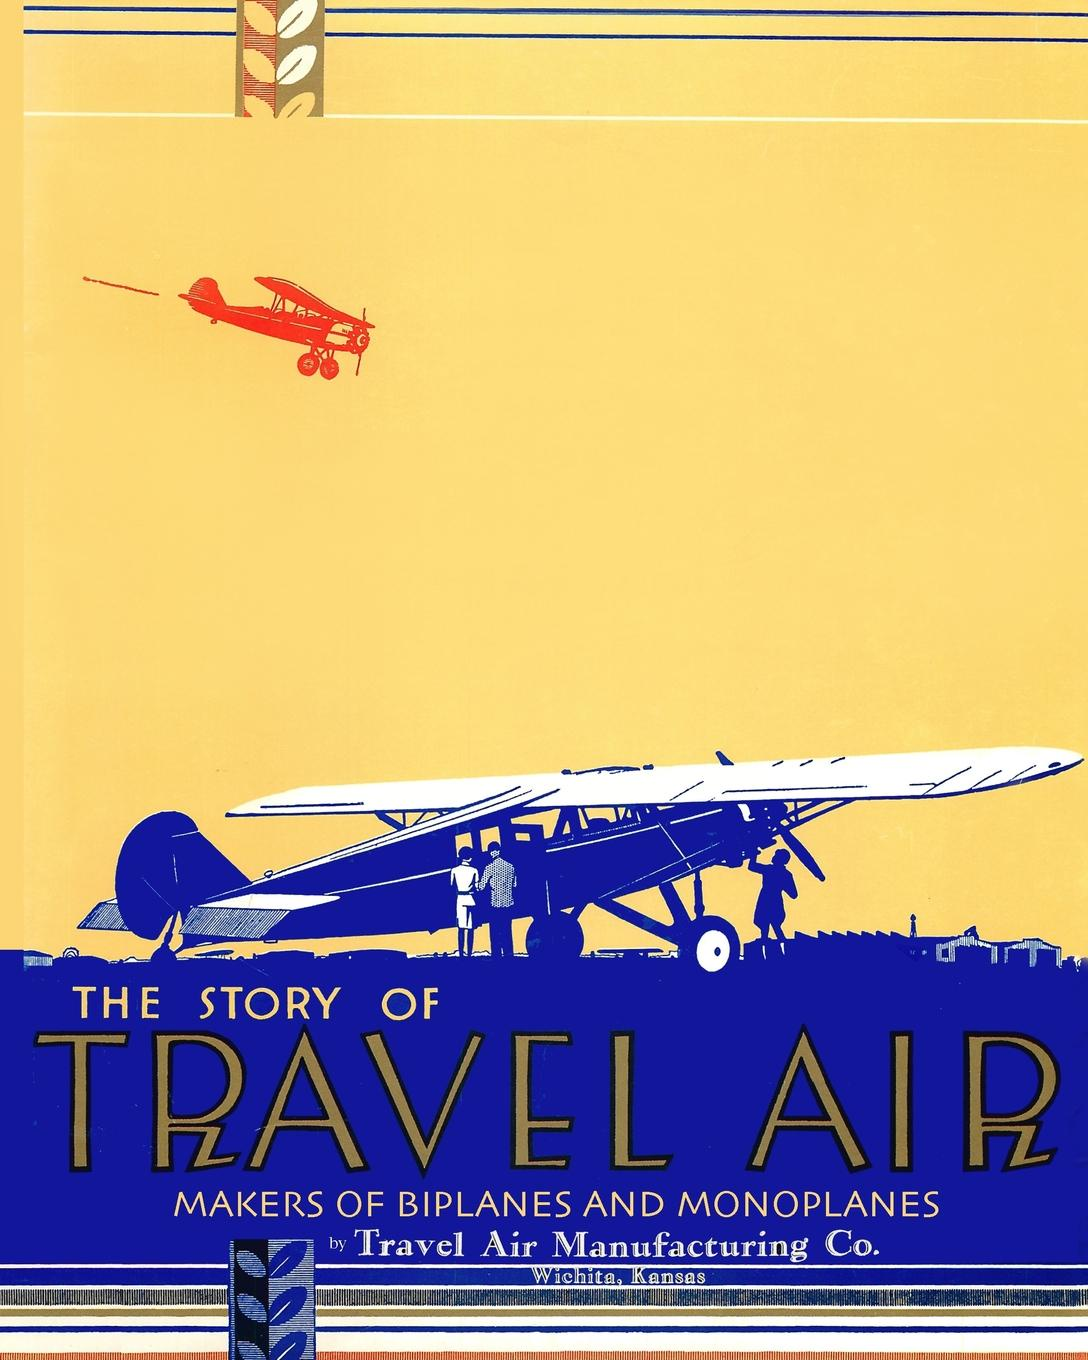 Travel Air Manufacturing Co. The Story of Travel Air Makers of Biplanes and Monoplanes